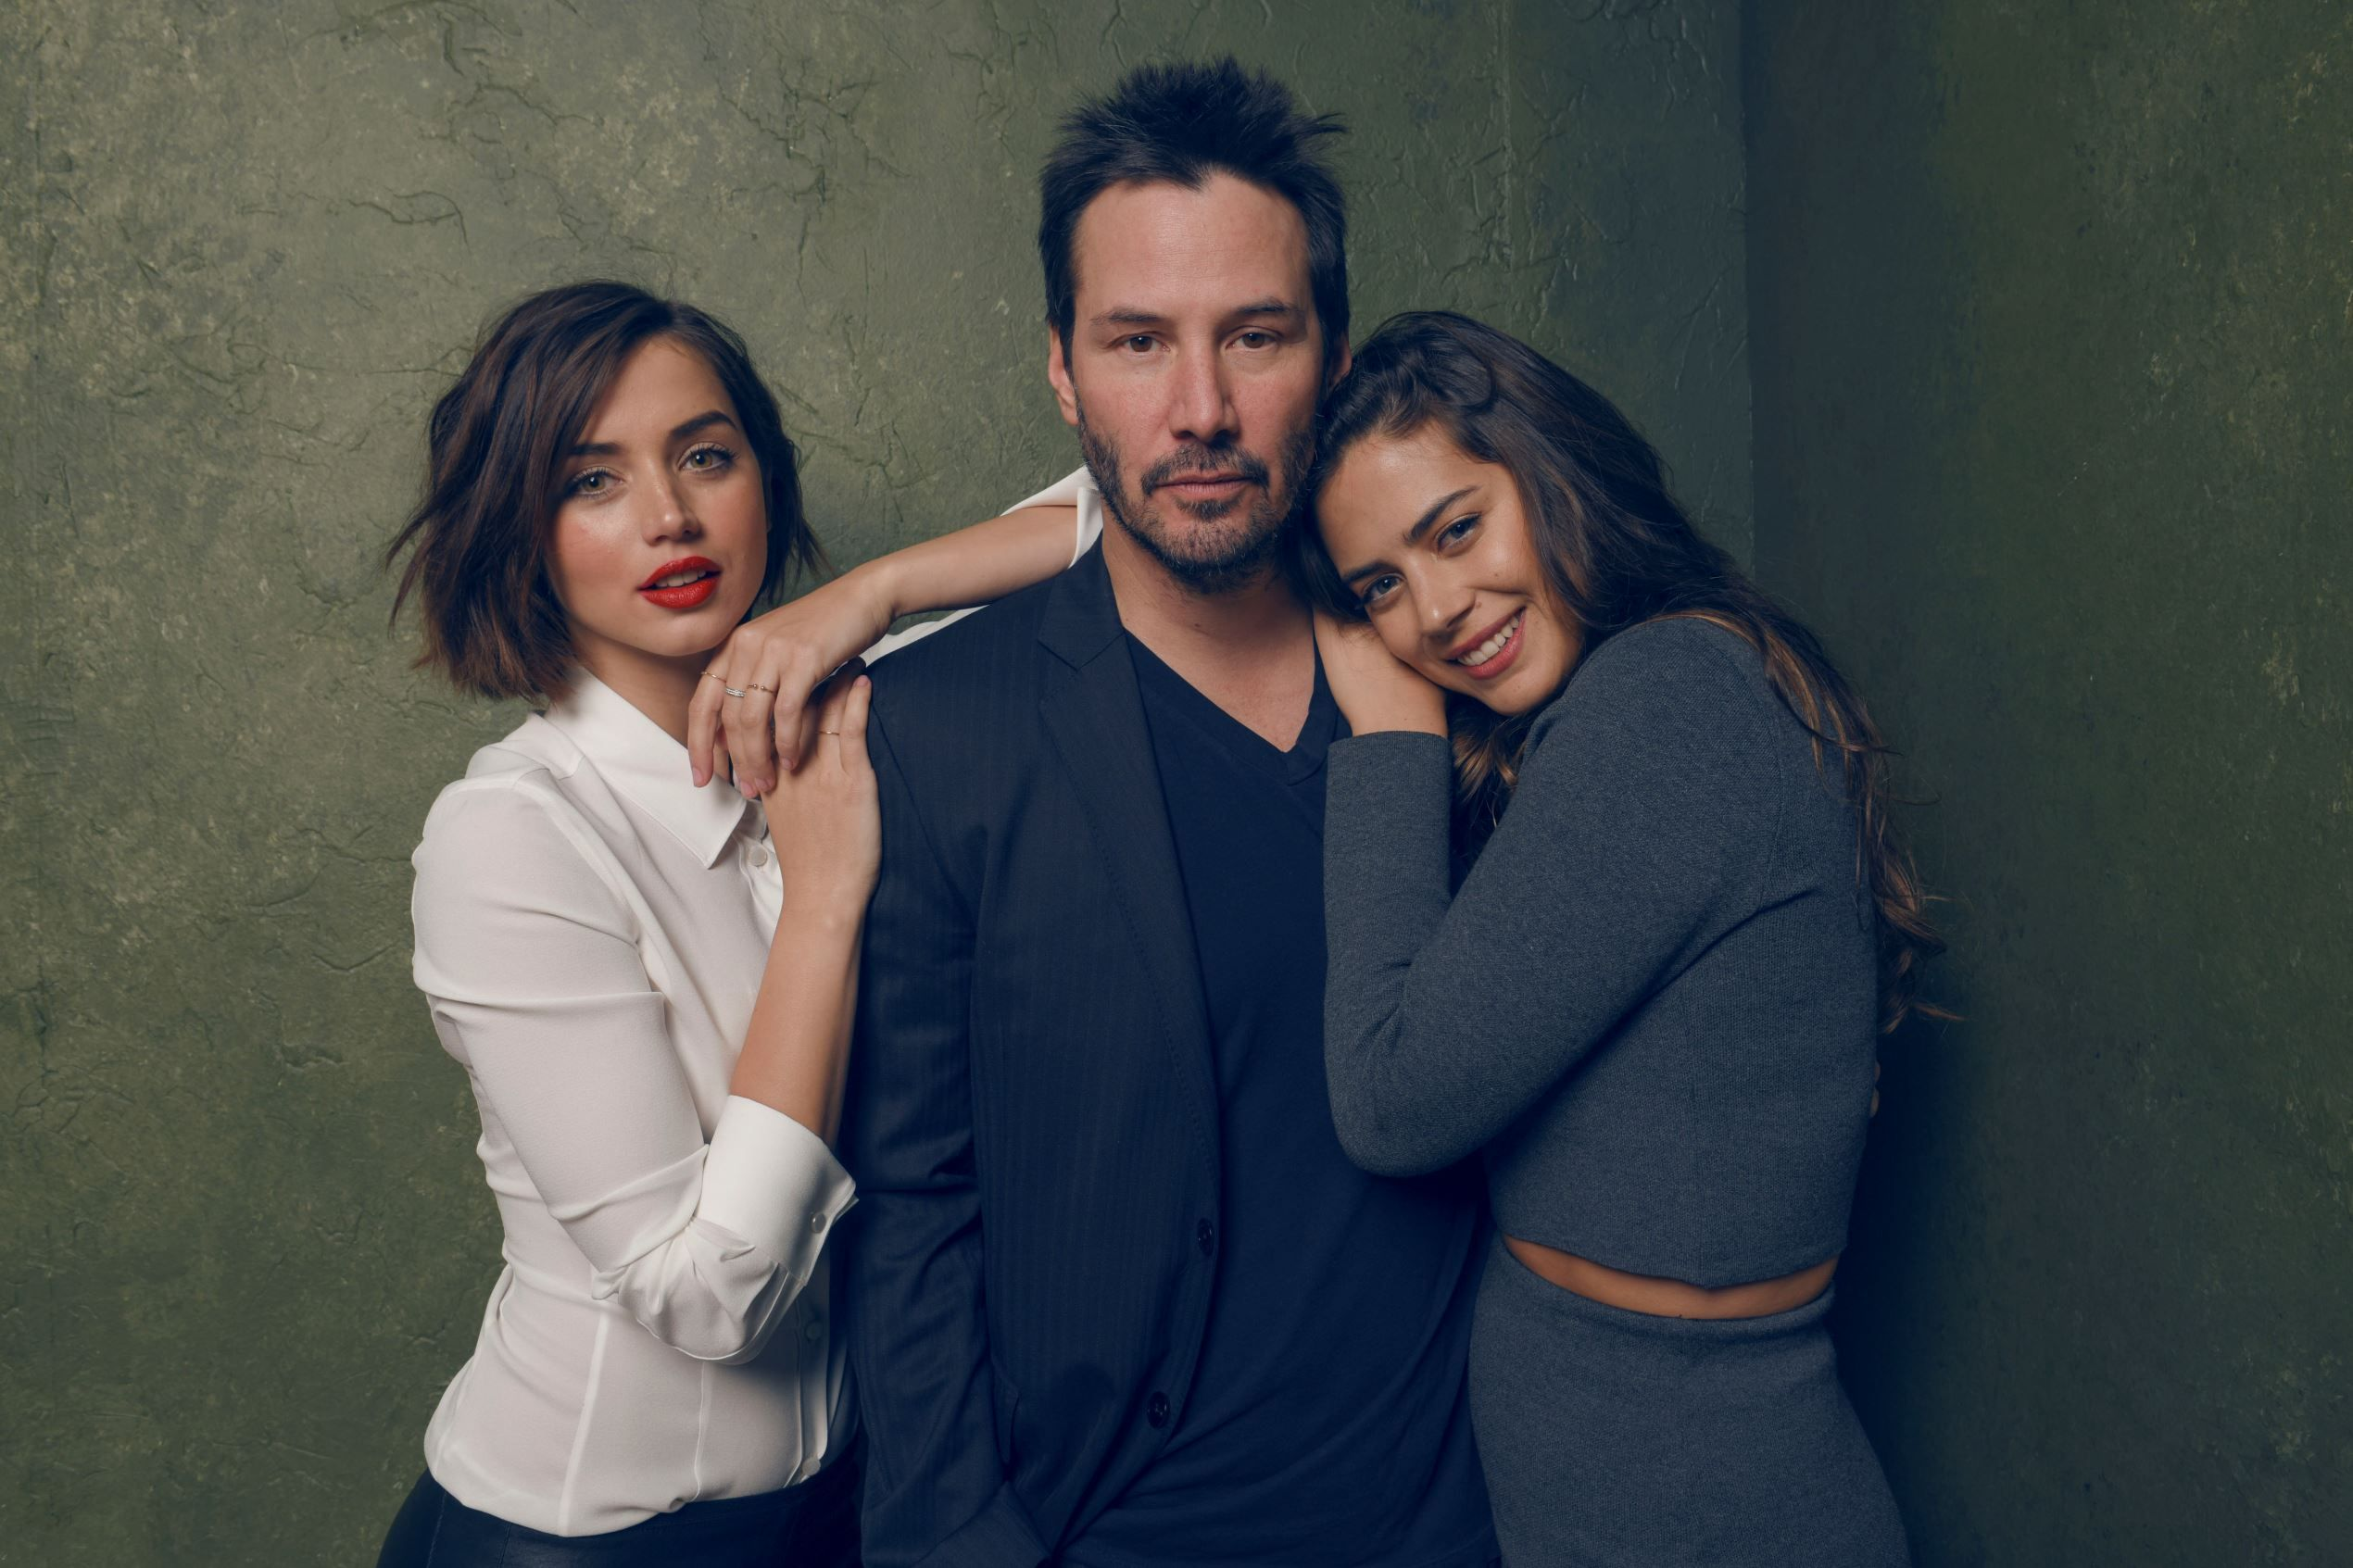 The Sundance Sessions Keanu Reeves Actors Keanu Reaves